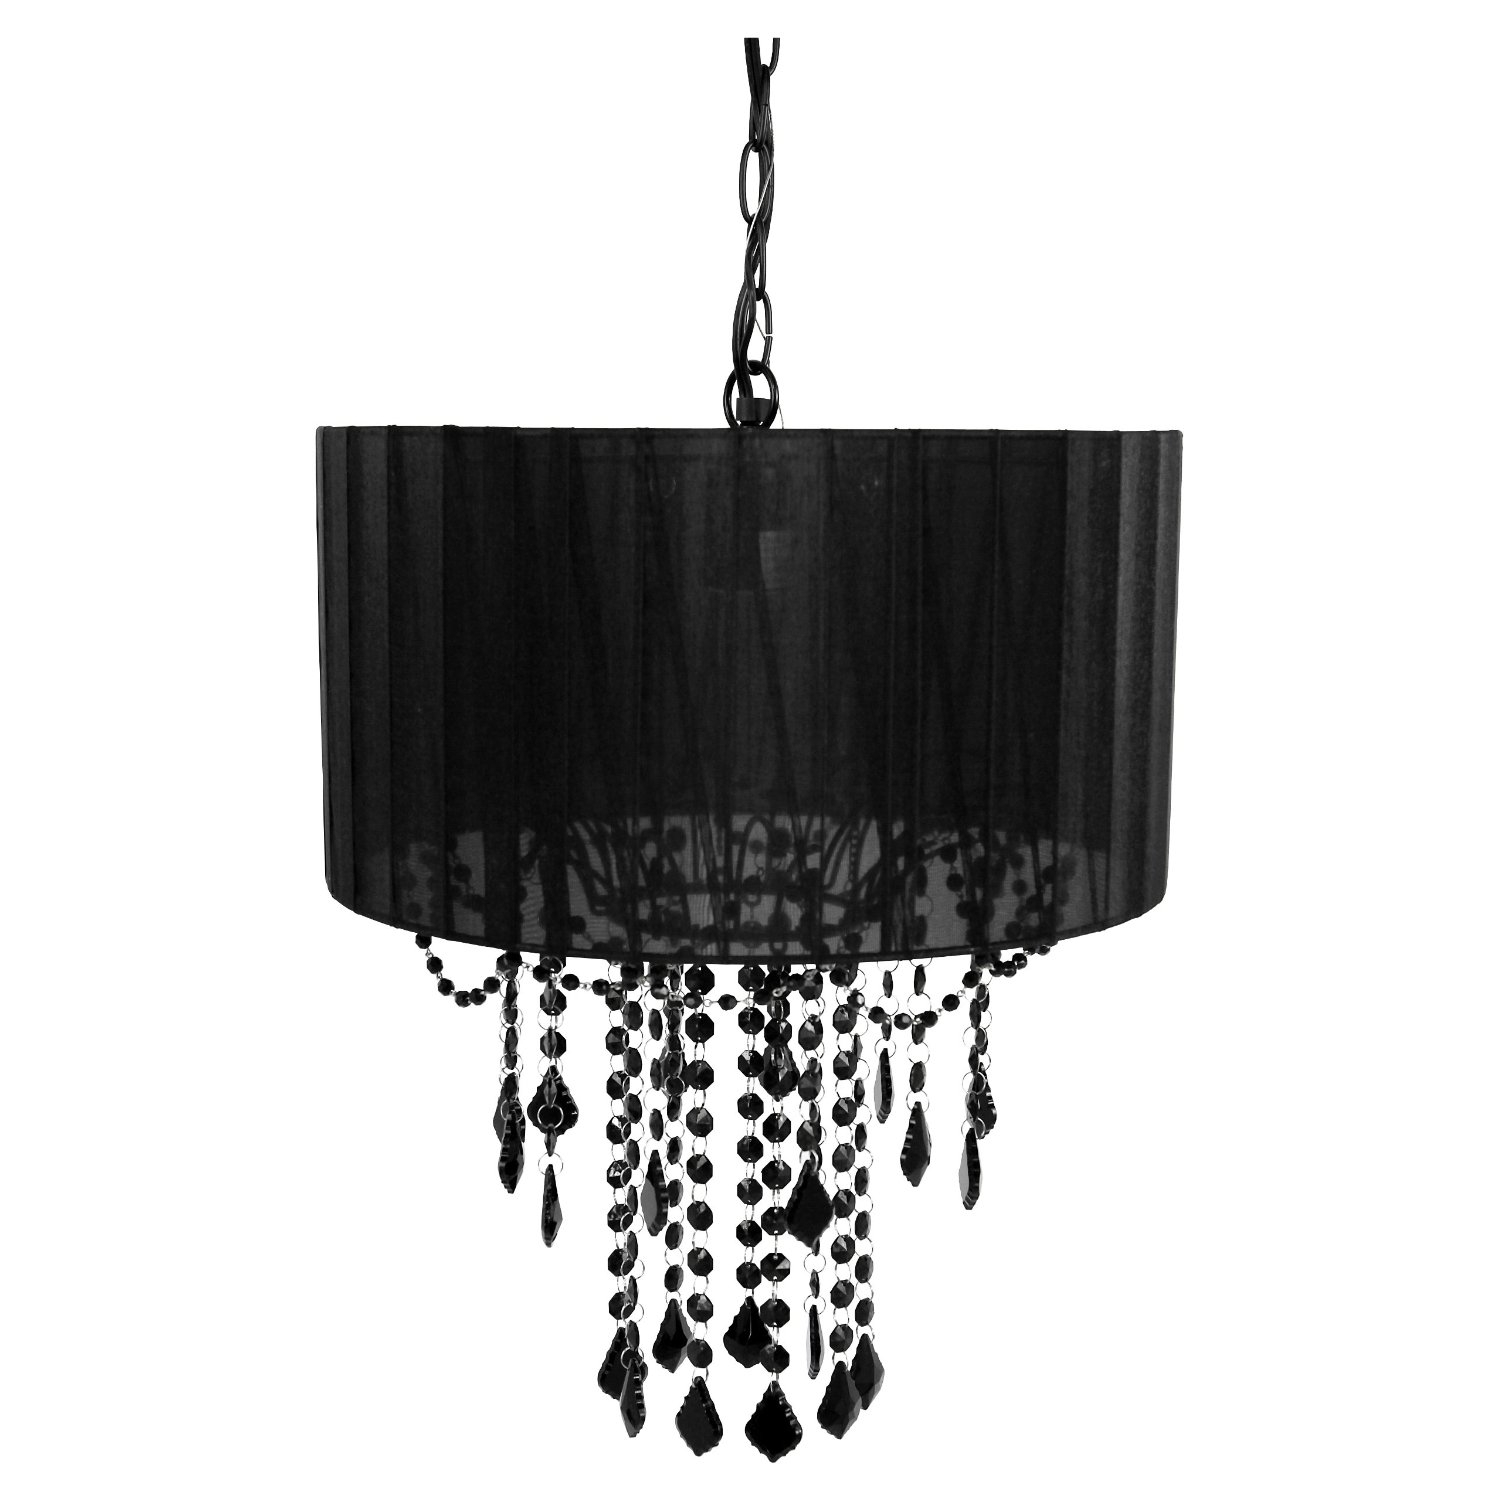 Stunning New Black Chandeliers Bedroom Lowes Courtagerivegauche For Black Chandelier Bedroom (#11 of 12)